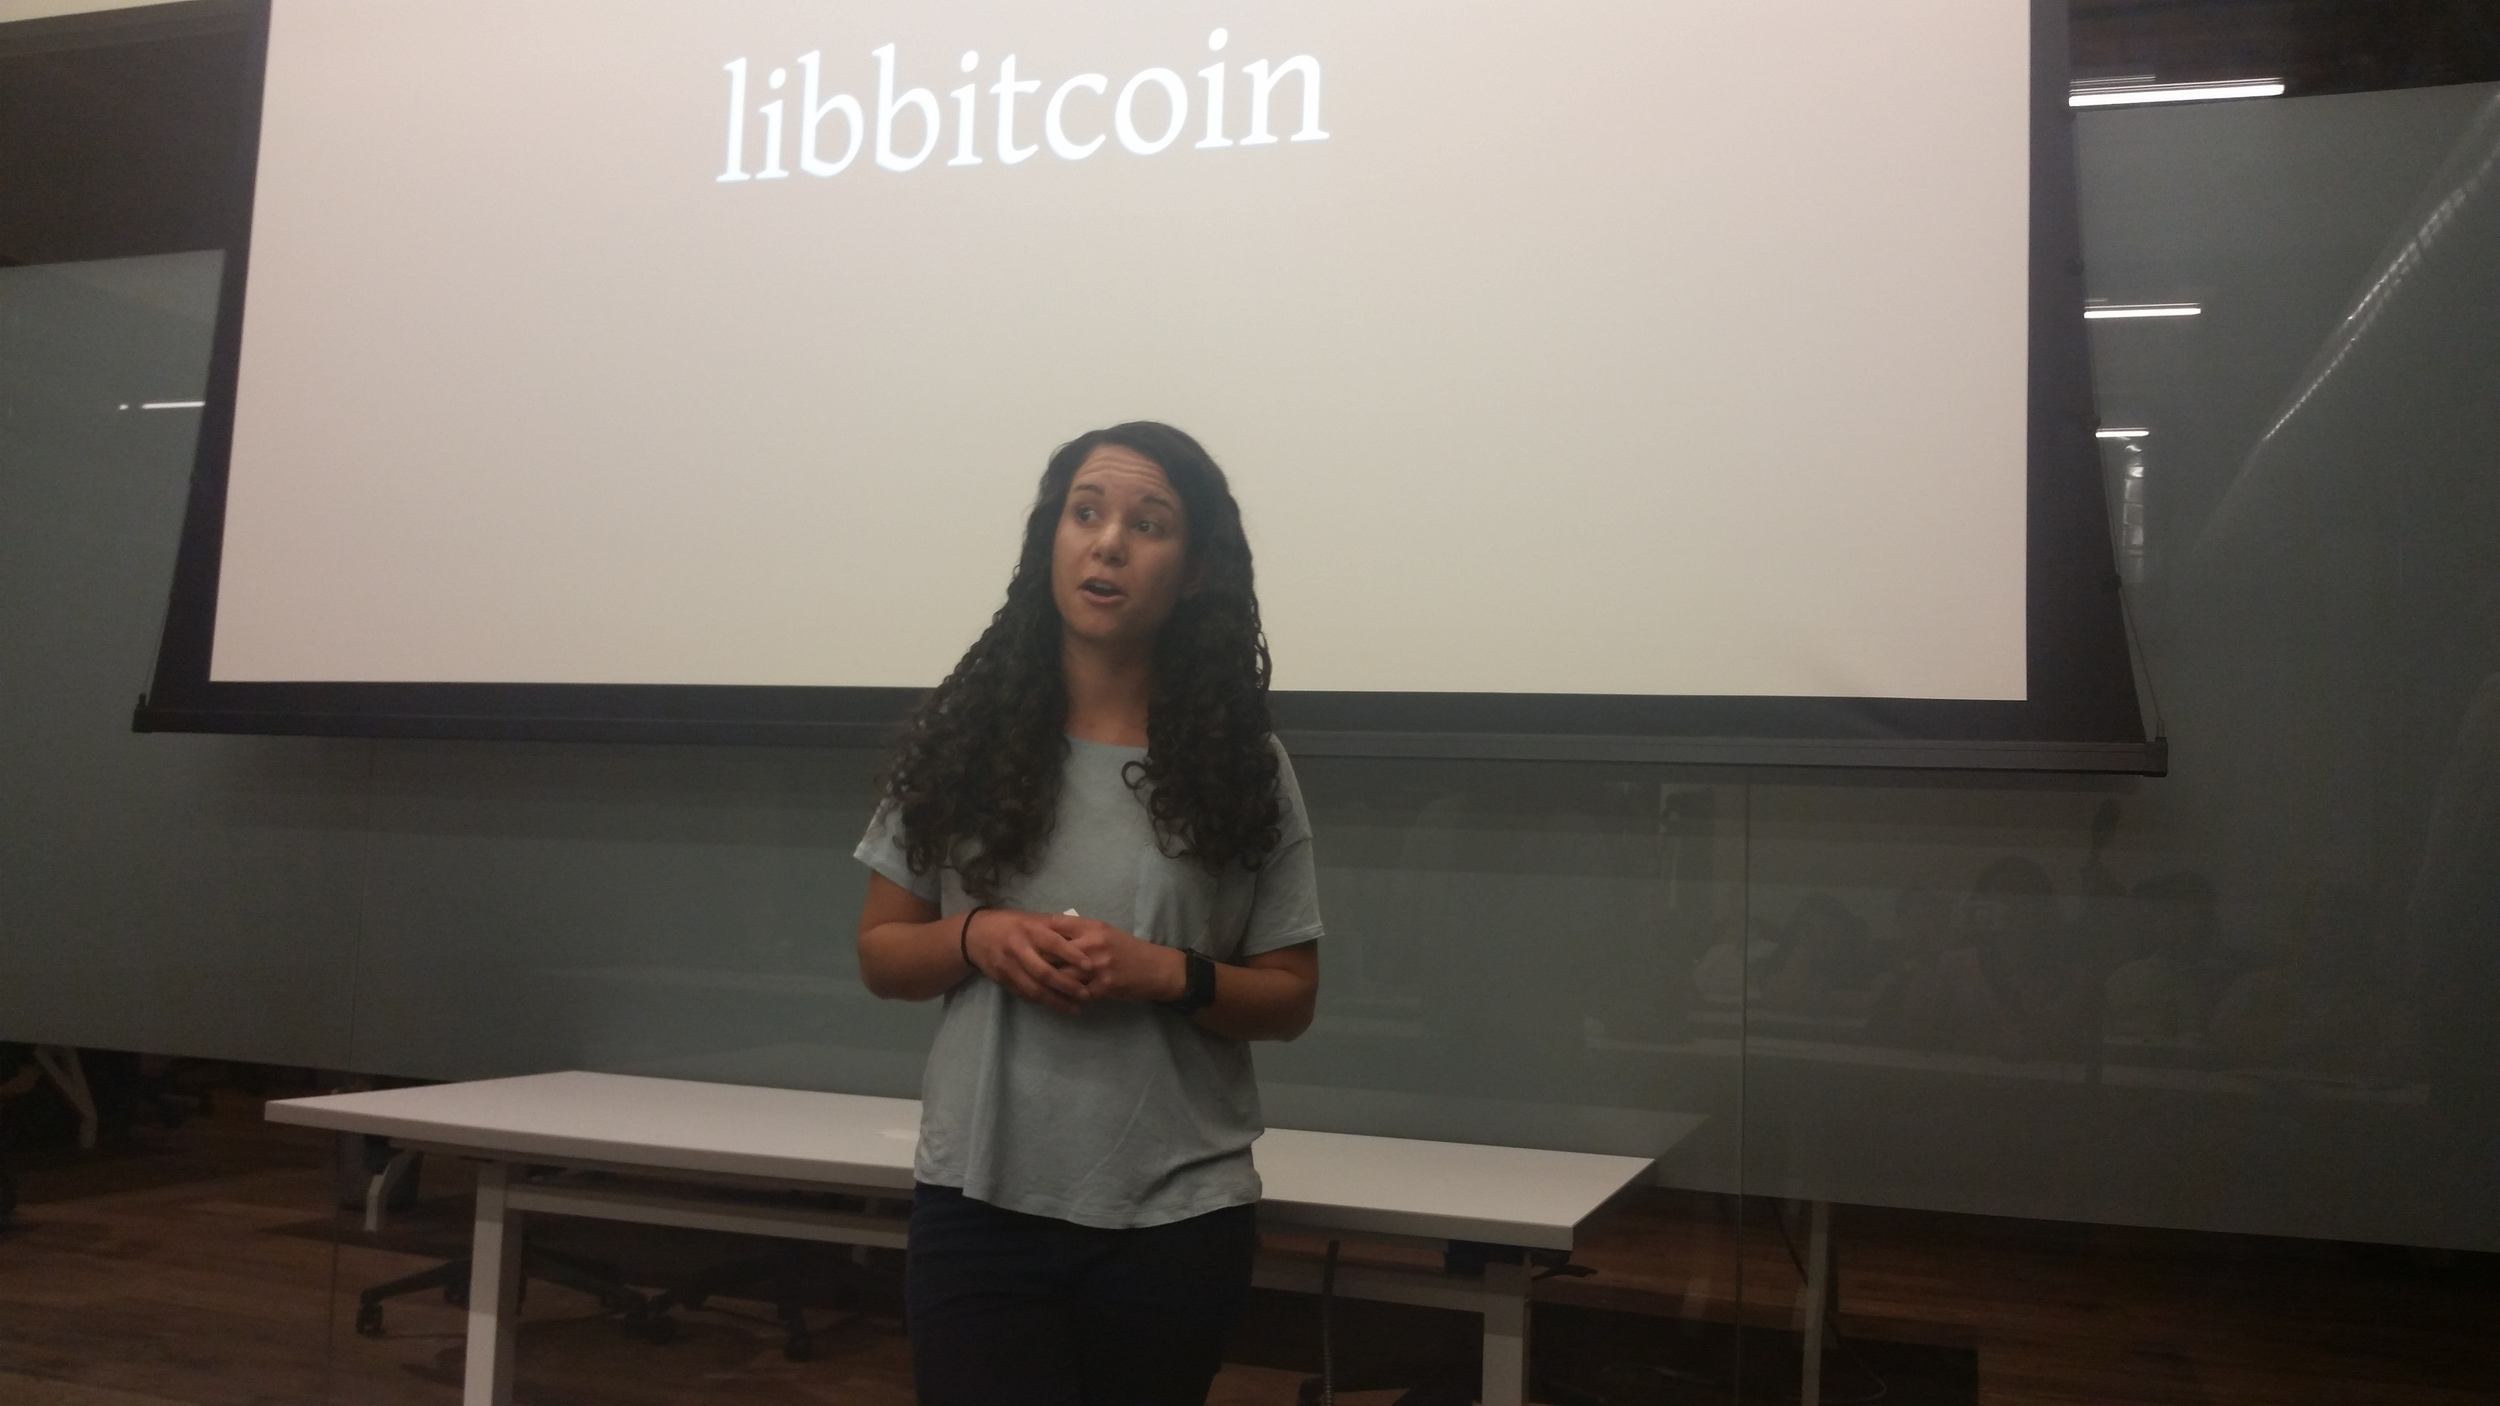 Denise Terry, co-organizer for SF Bitcoin Devs. She's incredibly inspiring!